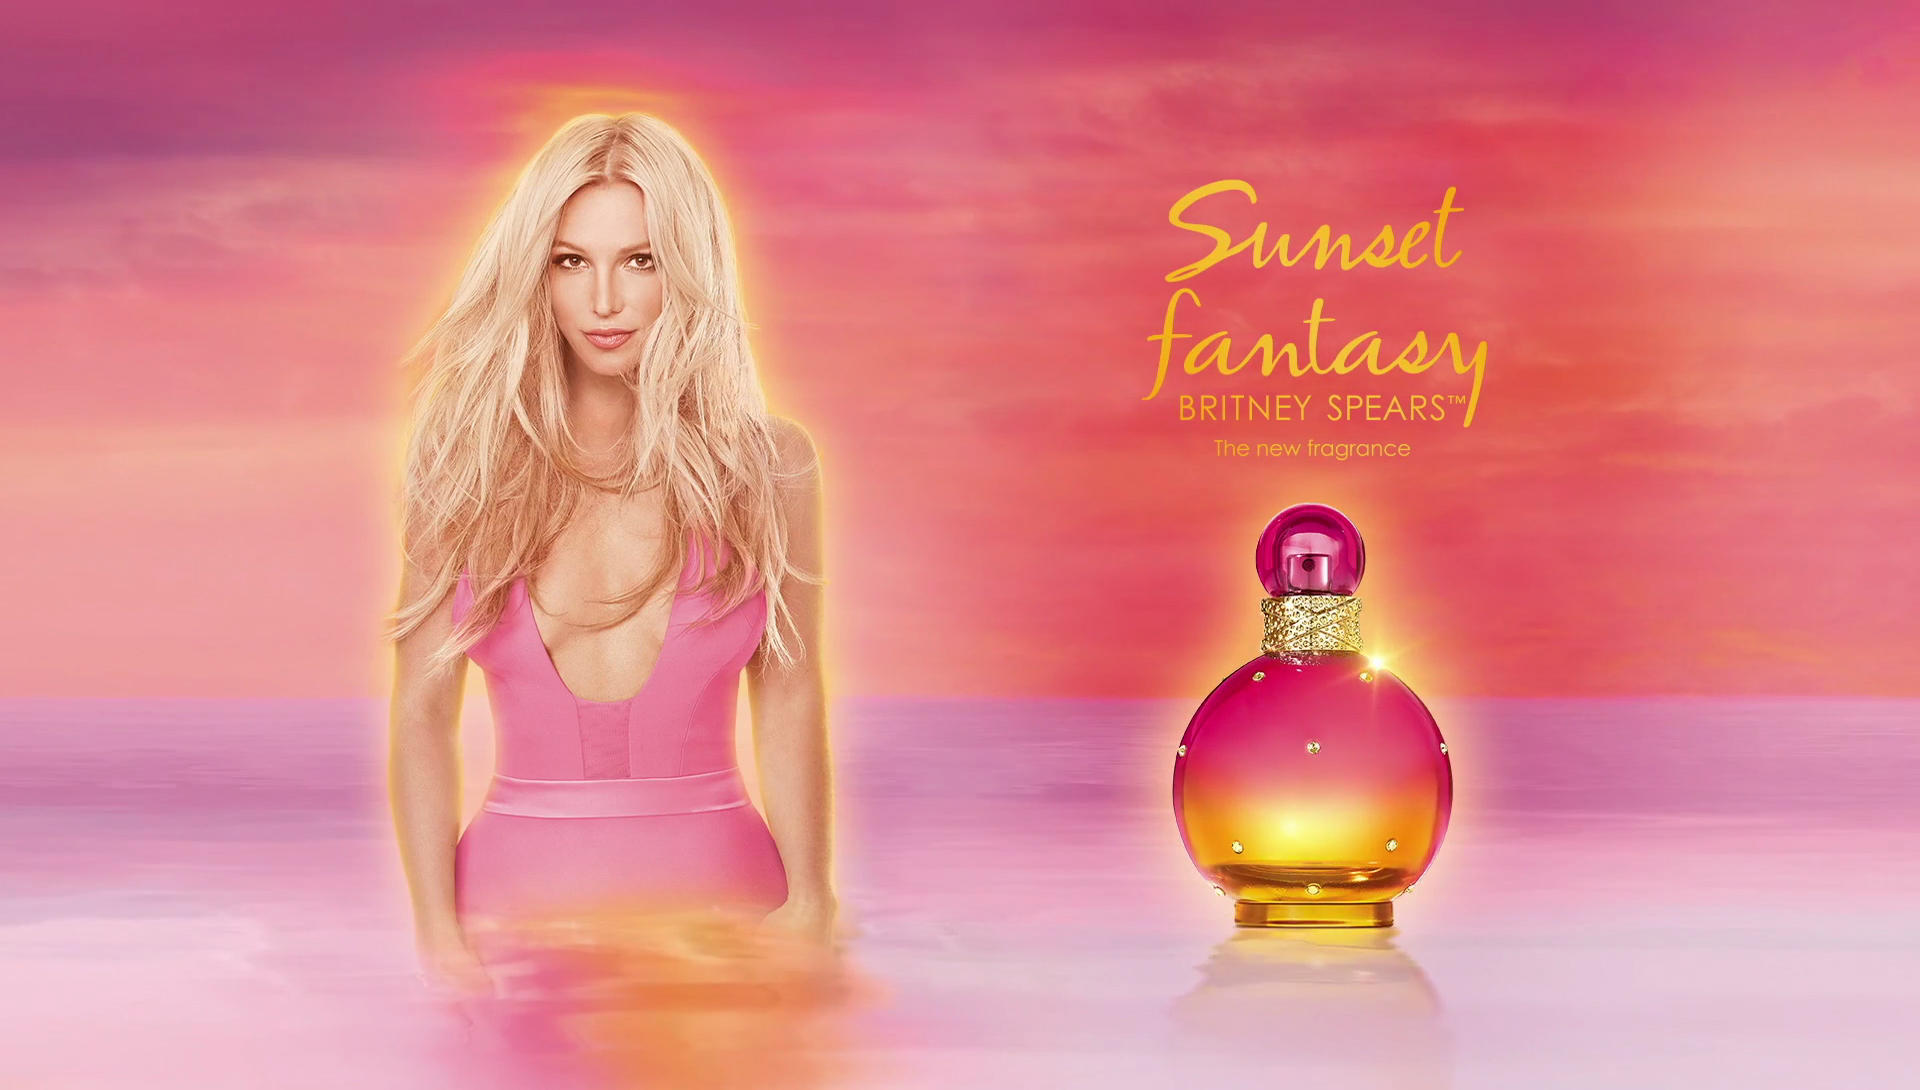 Imagenes Britney Spears: Sunset Fantasy Britney Spears Perfume